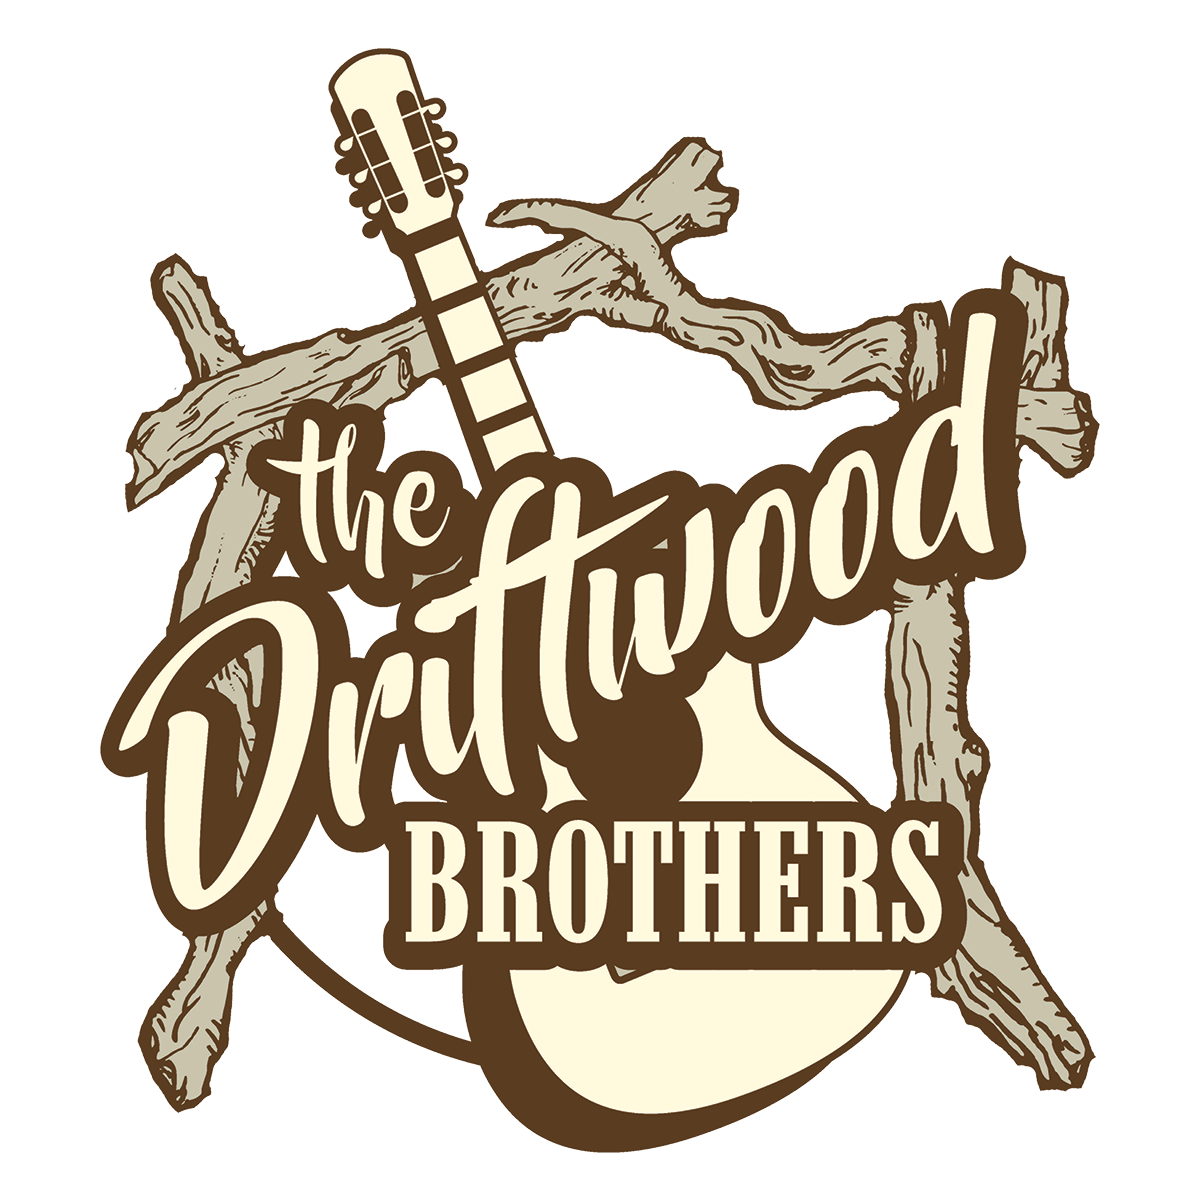 The Driftwood Brothers